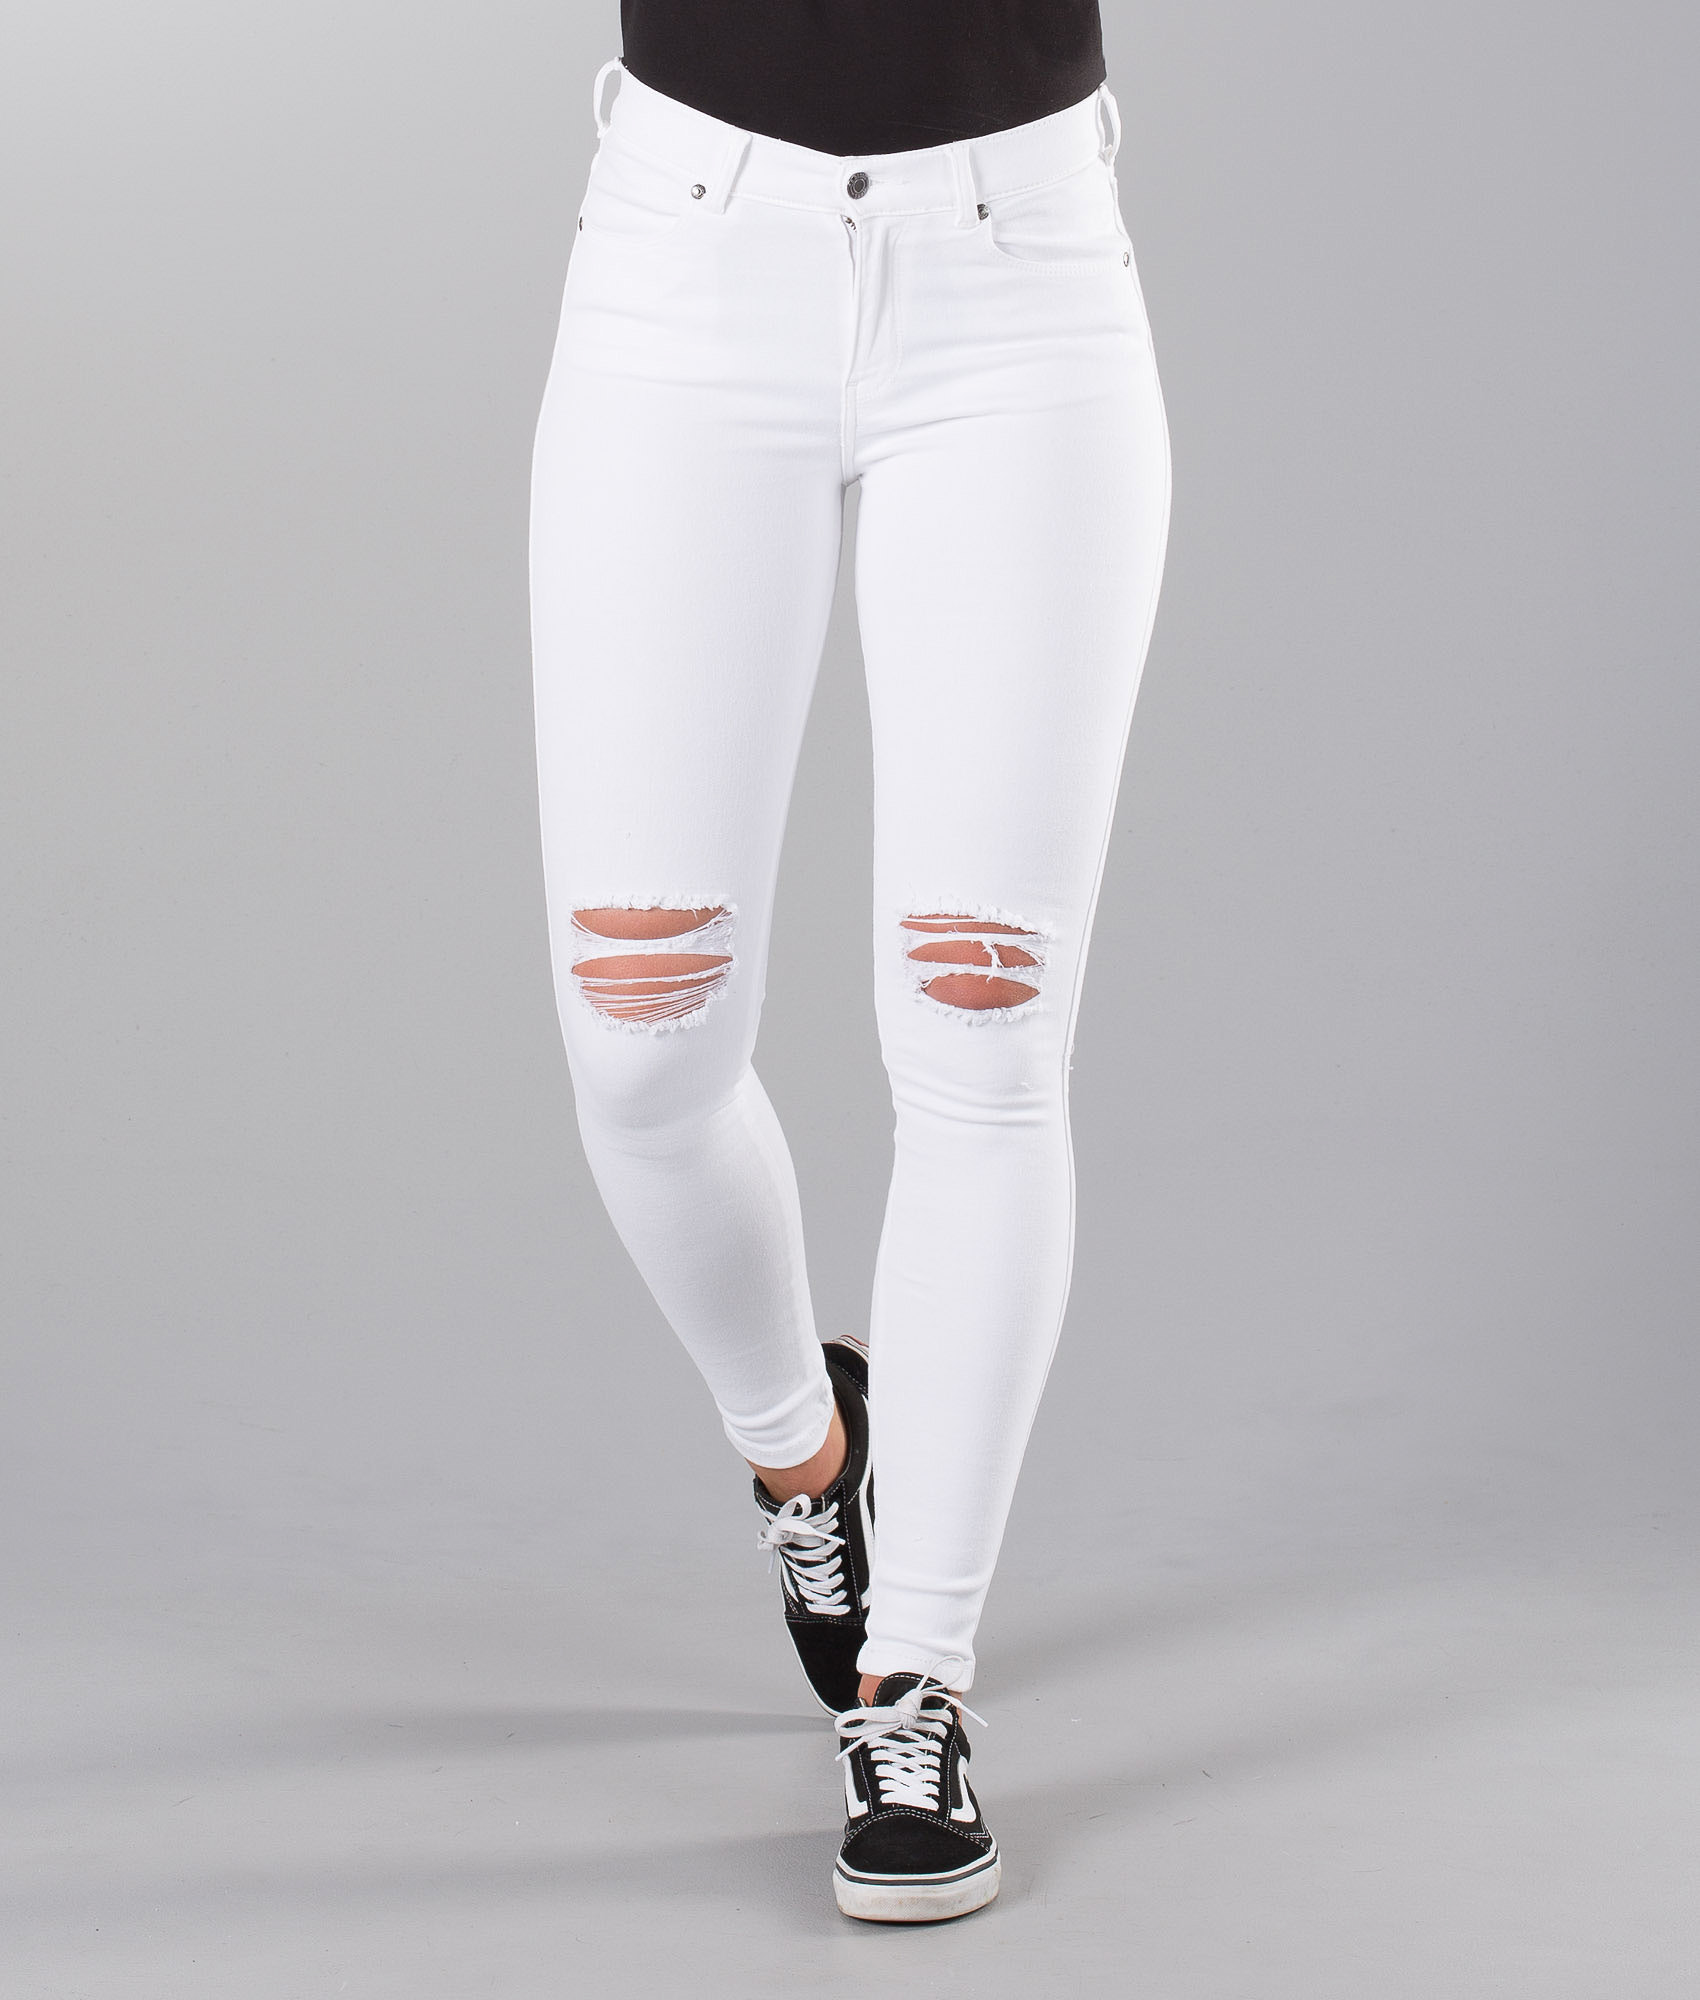 5dbf1921 Dr Denim Lexy Pants White Ripped Knees - Ridestore.com